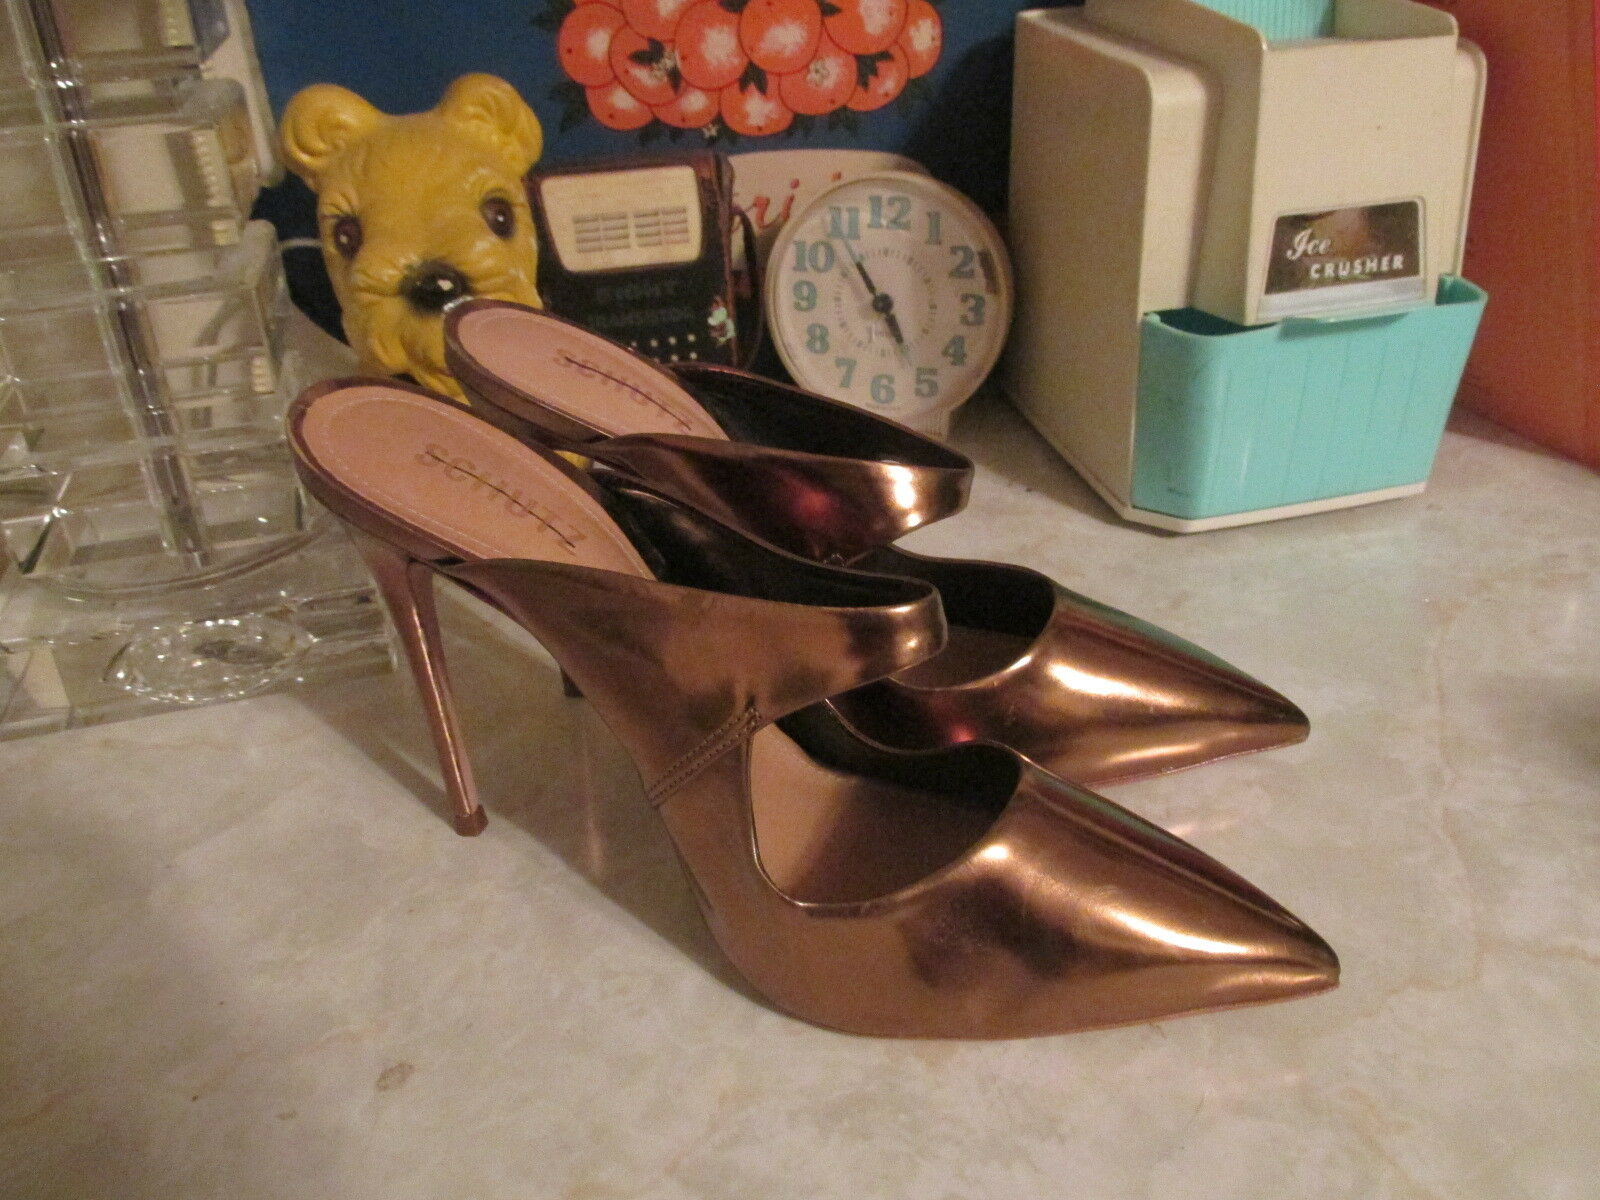 Schutz new Nicolly Pointy Toe Mule Heels Patent Leder color new Schutz bronze Sz: 8 NWOB ac146d